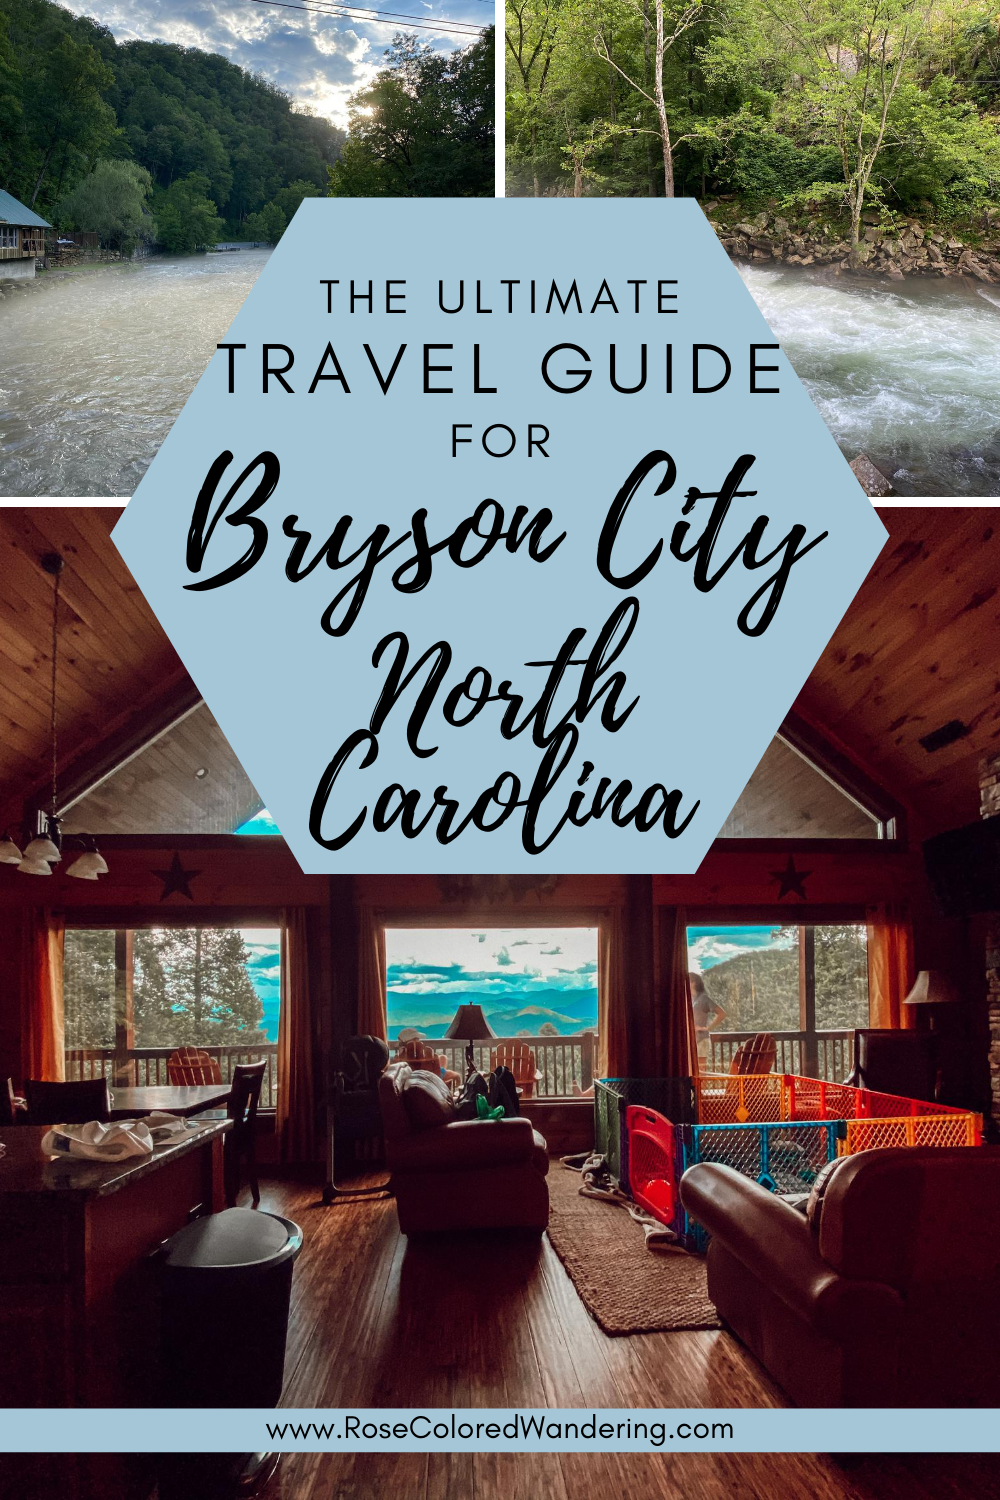 The Ultimate Travel Guide to Bryson City, North Carolina